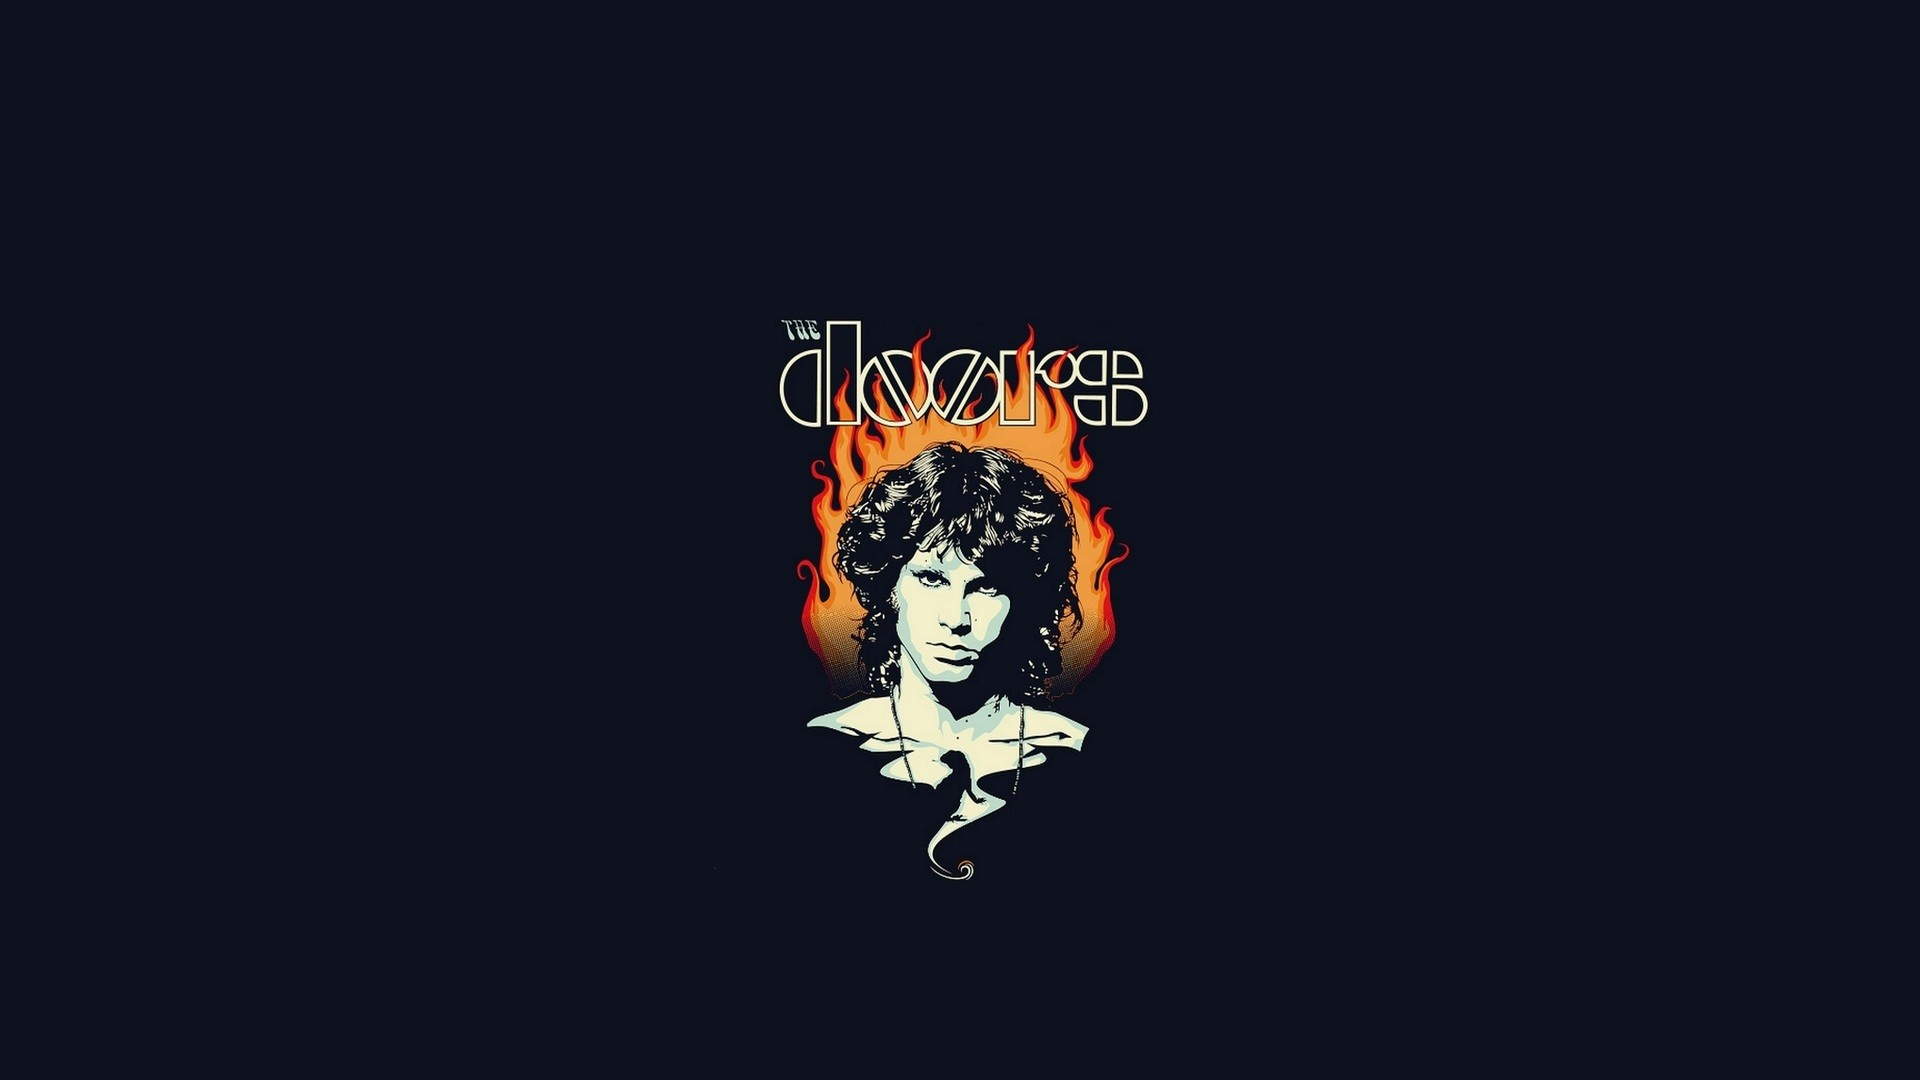 The Doors HD Wallpapers and Backgrounds